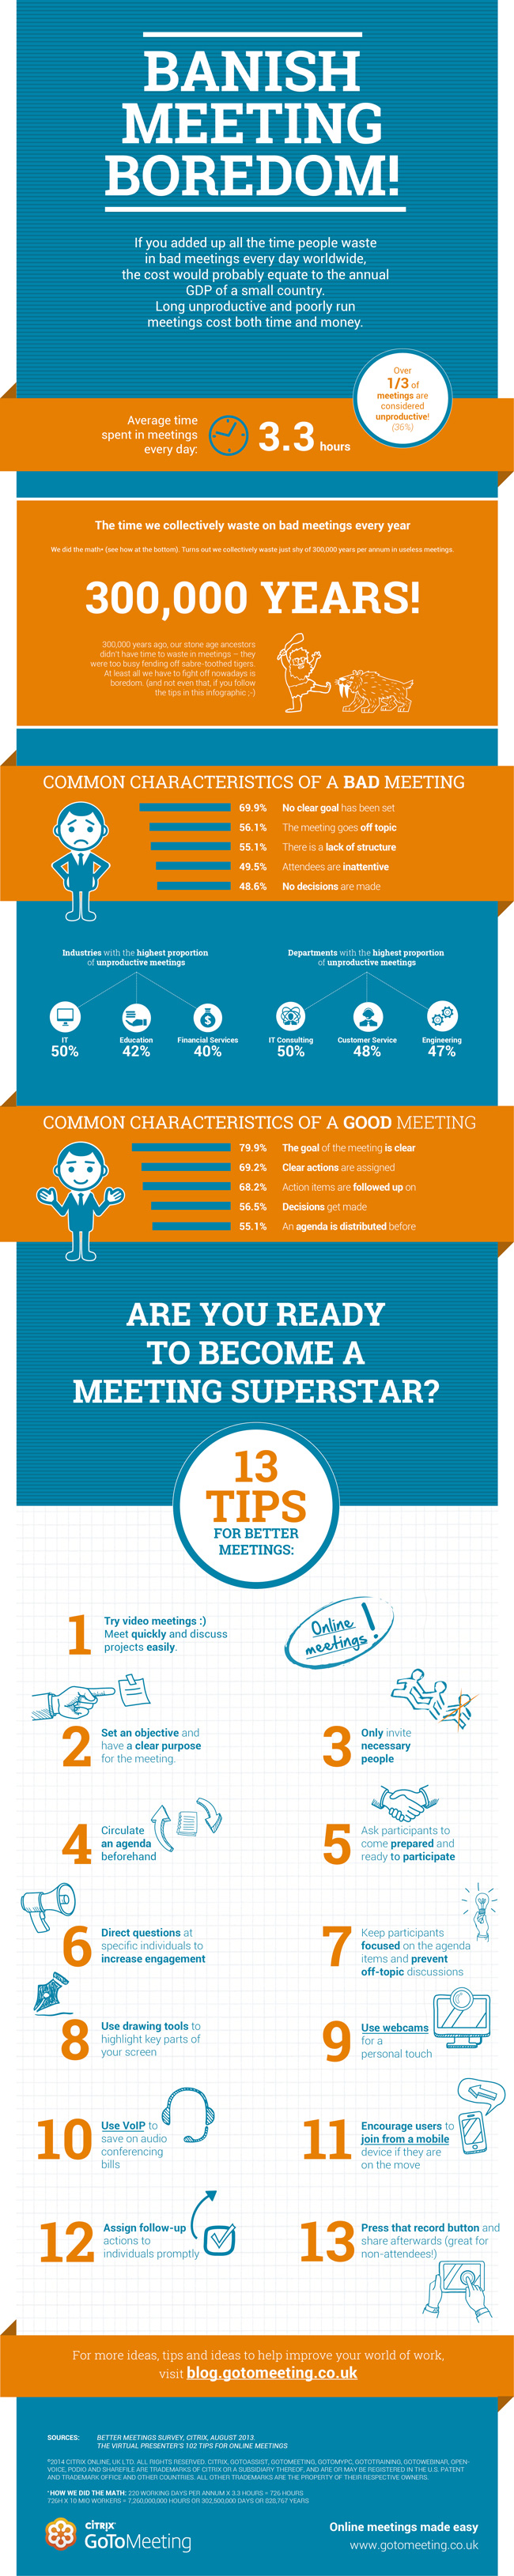 468EN_Infographic_Insiders-Guide-To-Better-Meetings